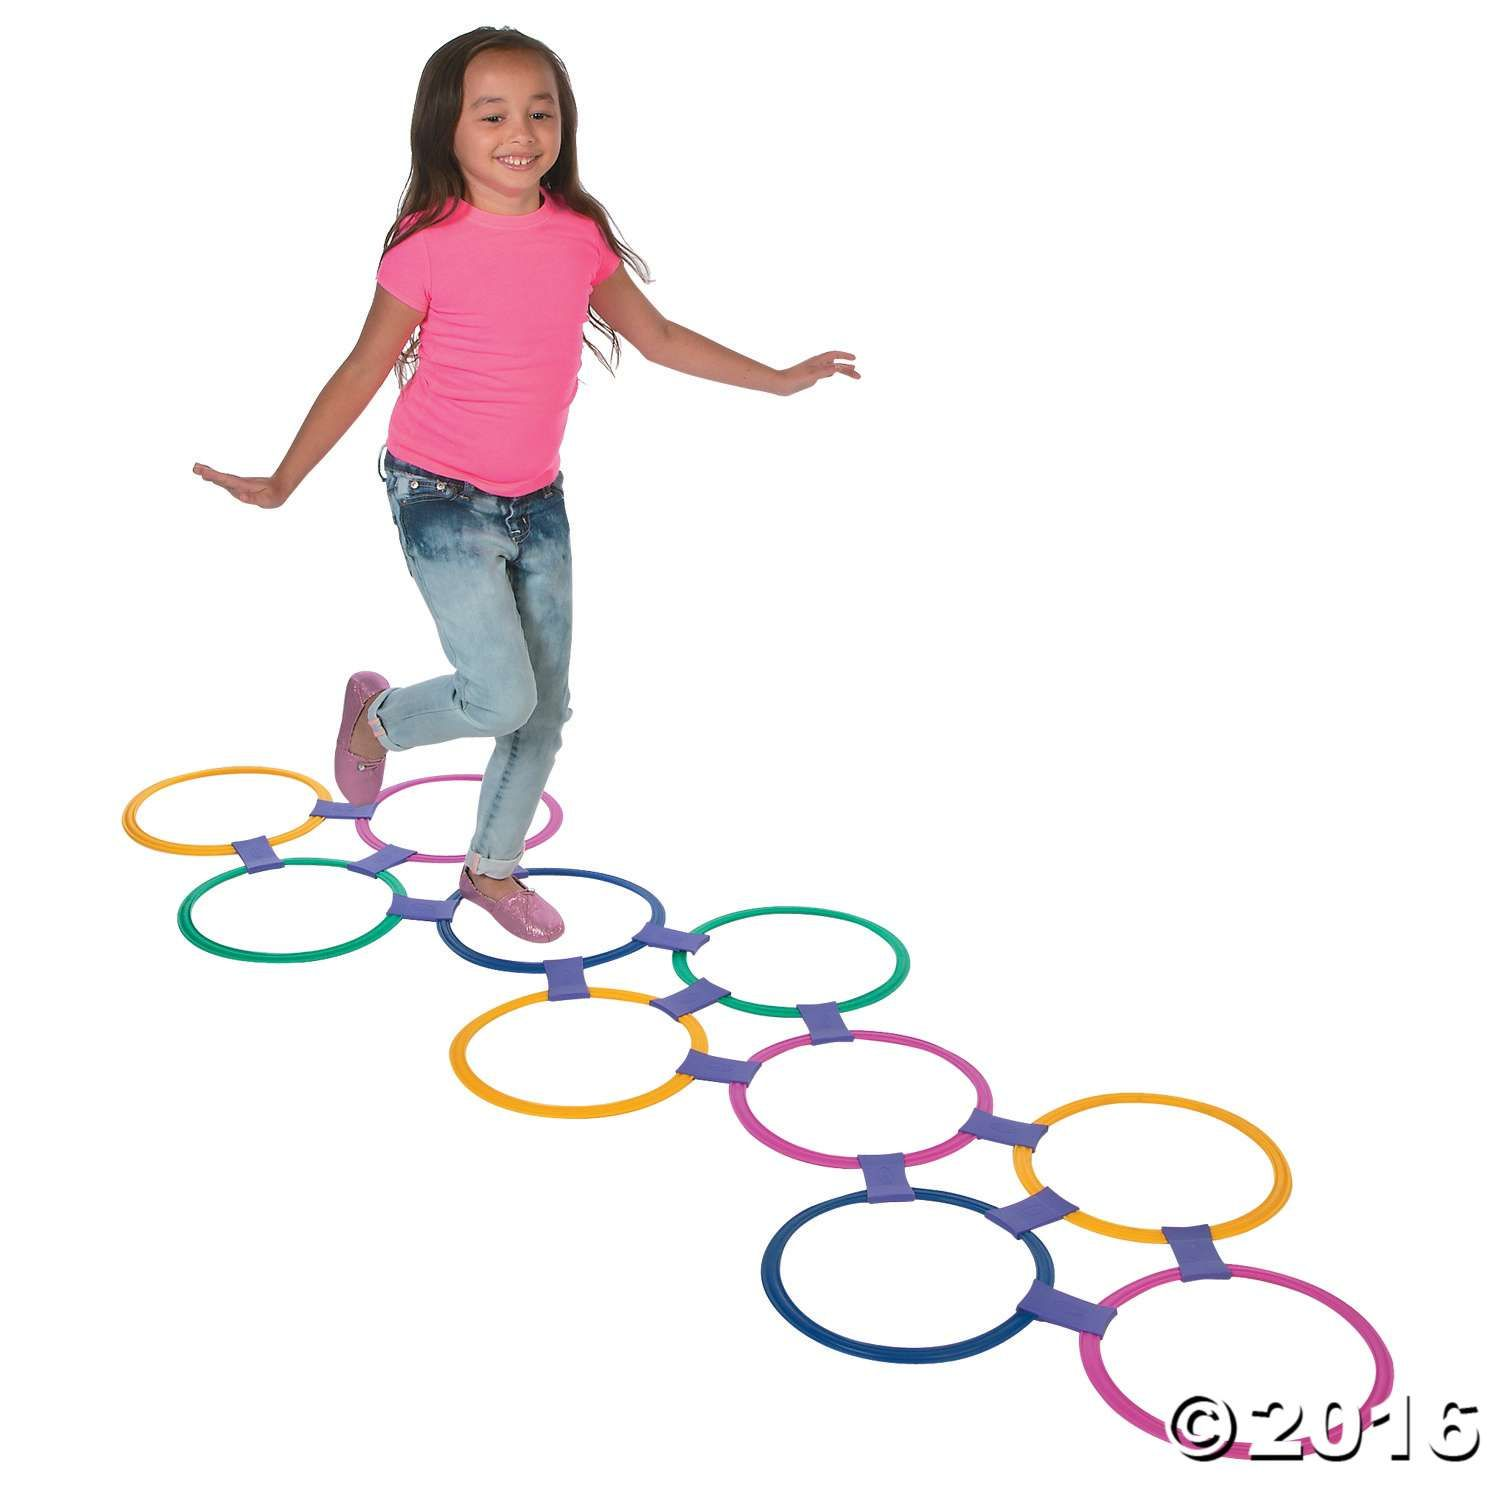 Hopscotch Ring Set Oriental Trading Ring Game Hopscotch Playground Activities